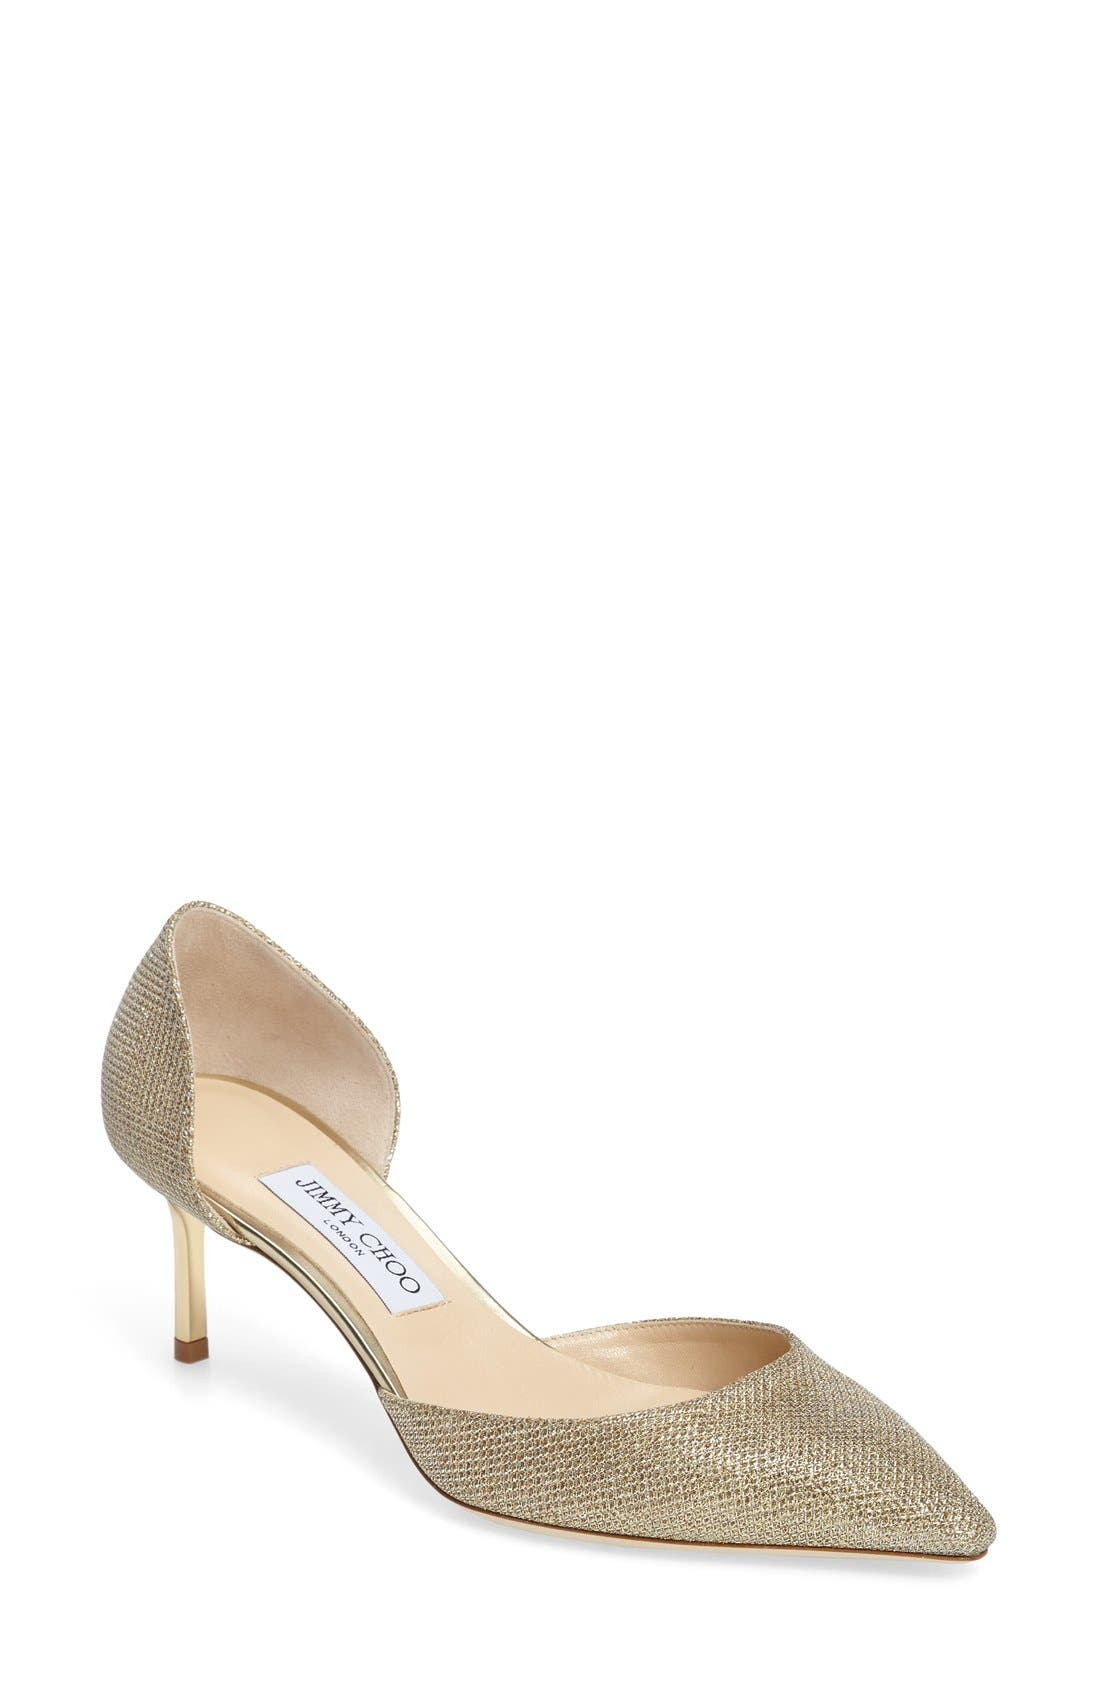 Main Image - Jimmy Choo Esther Pointy Toe Pump (Women)